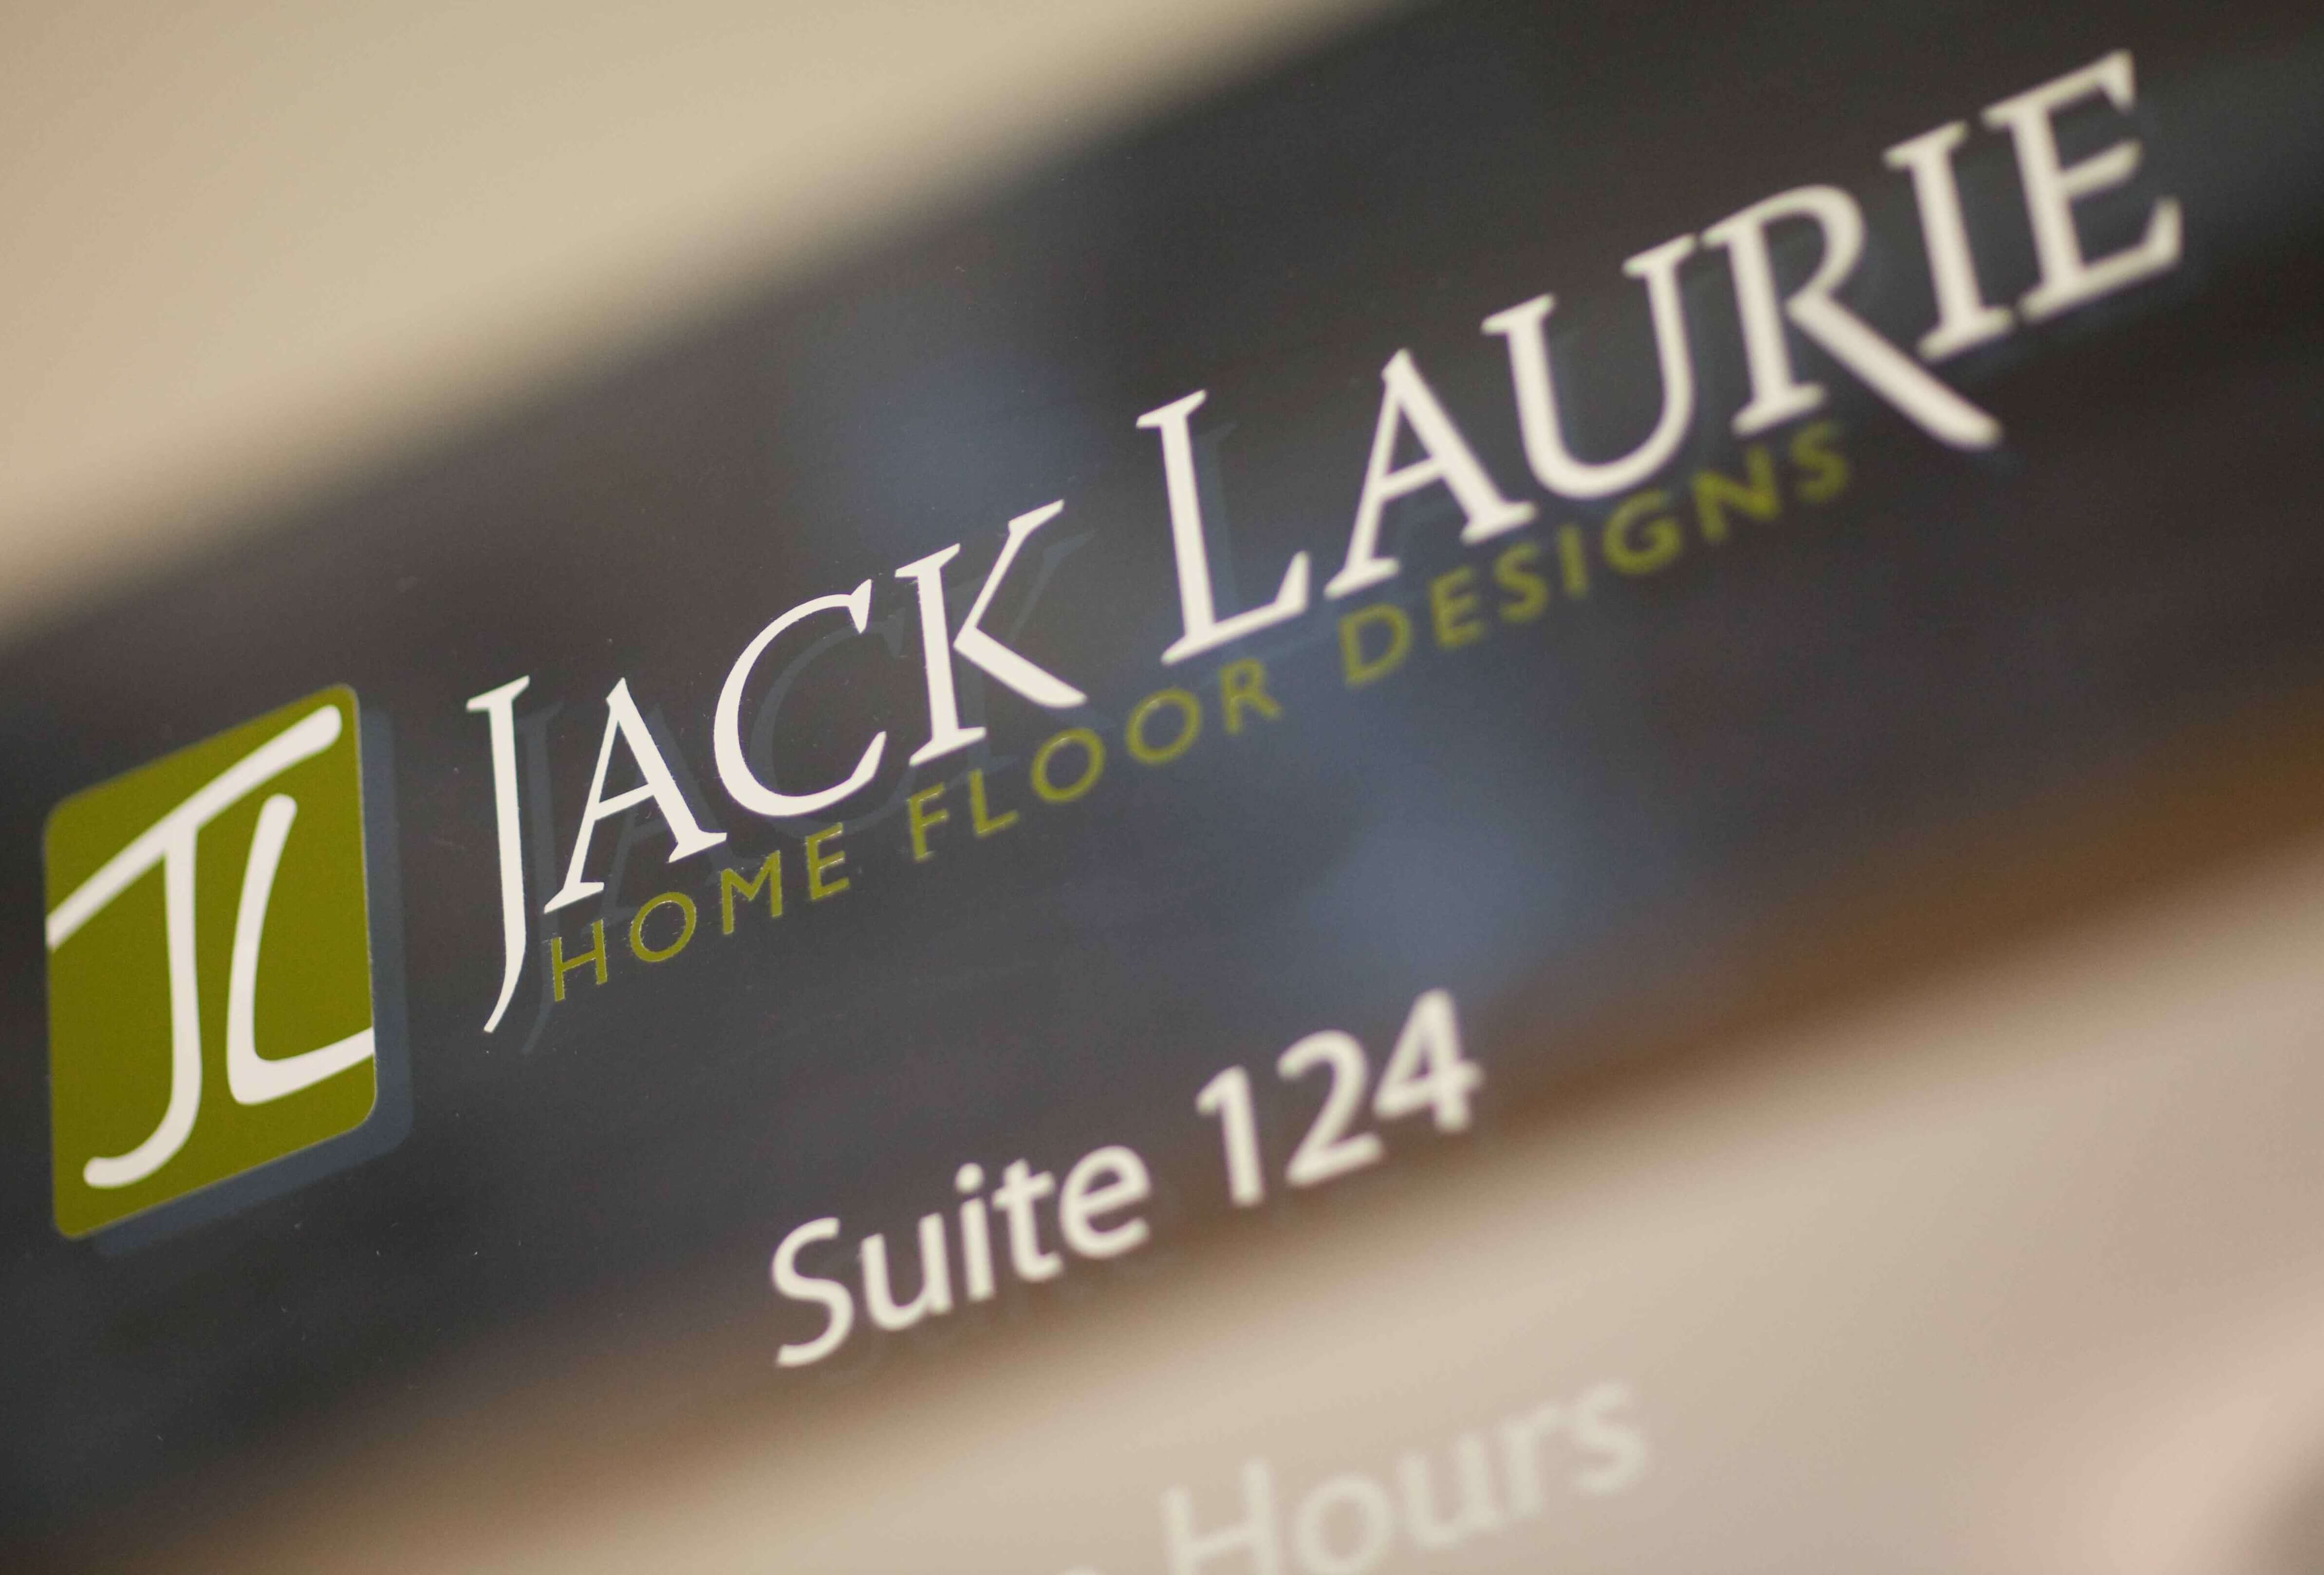 Jack Laurie Home Floor Designs Grand Opening